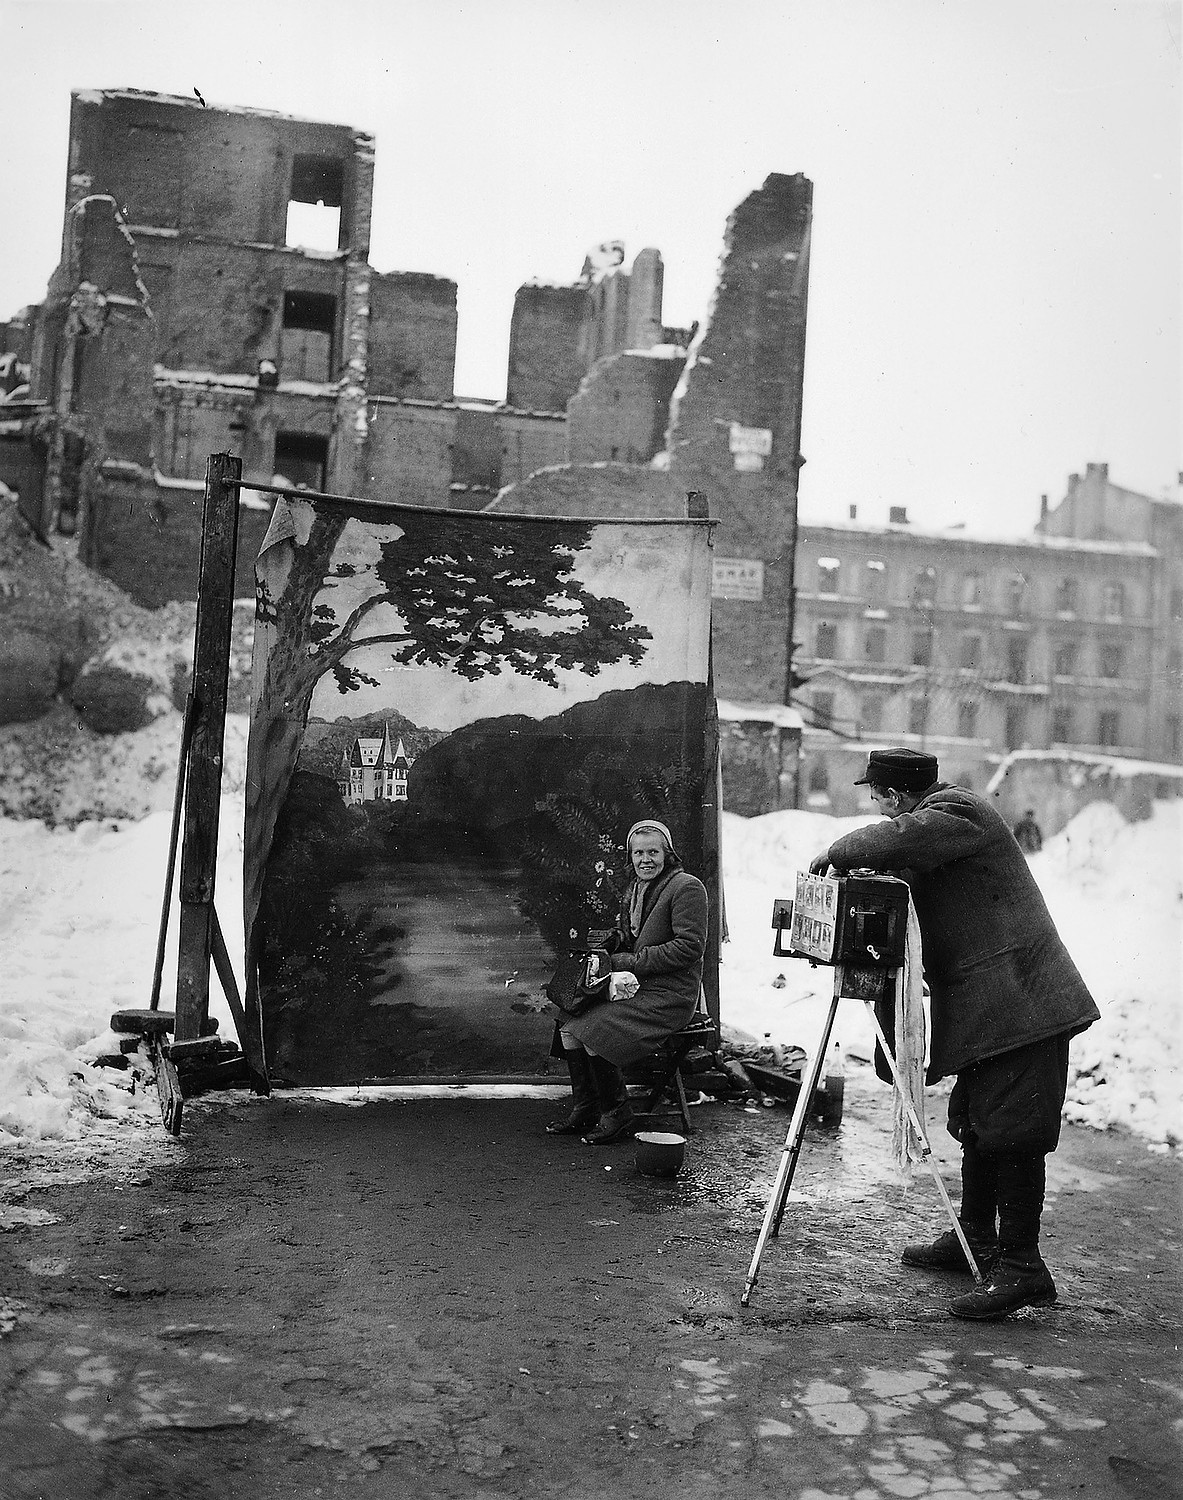 (Photo: Warsaw, 1946. Michael Nash AP)